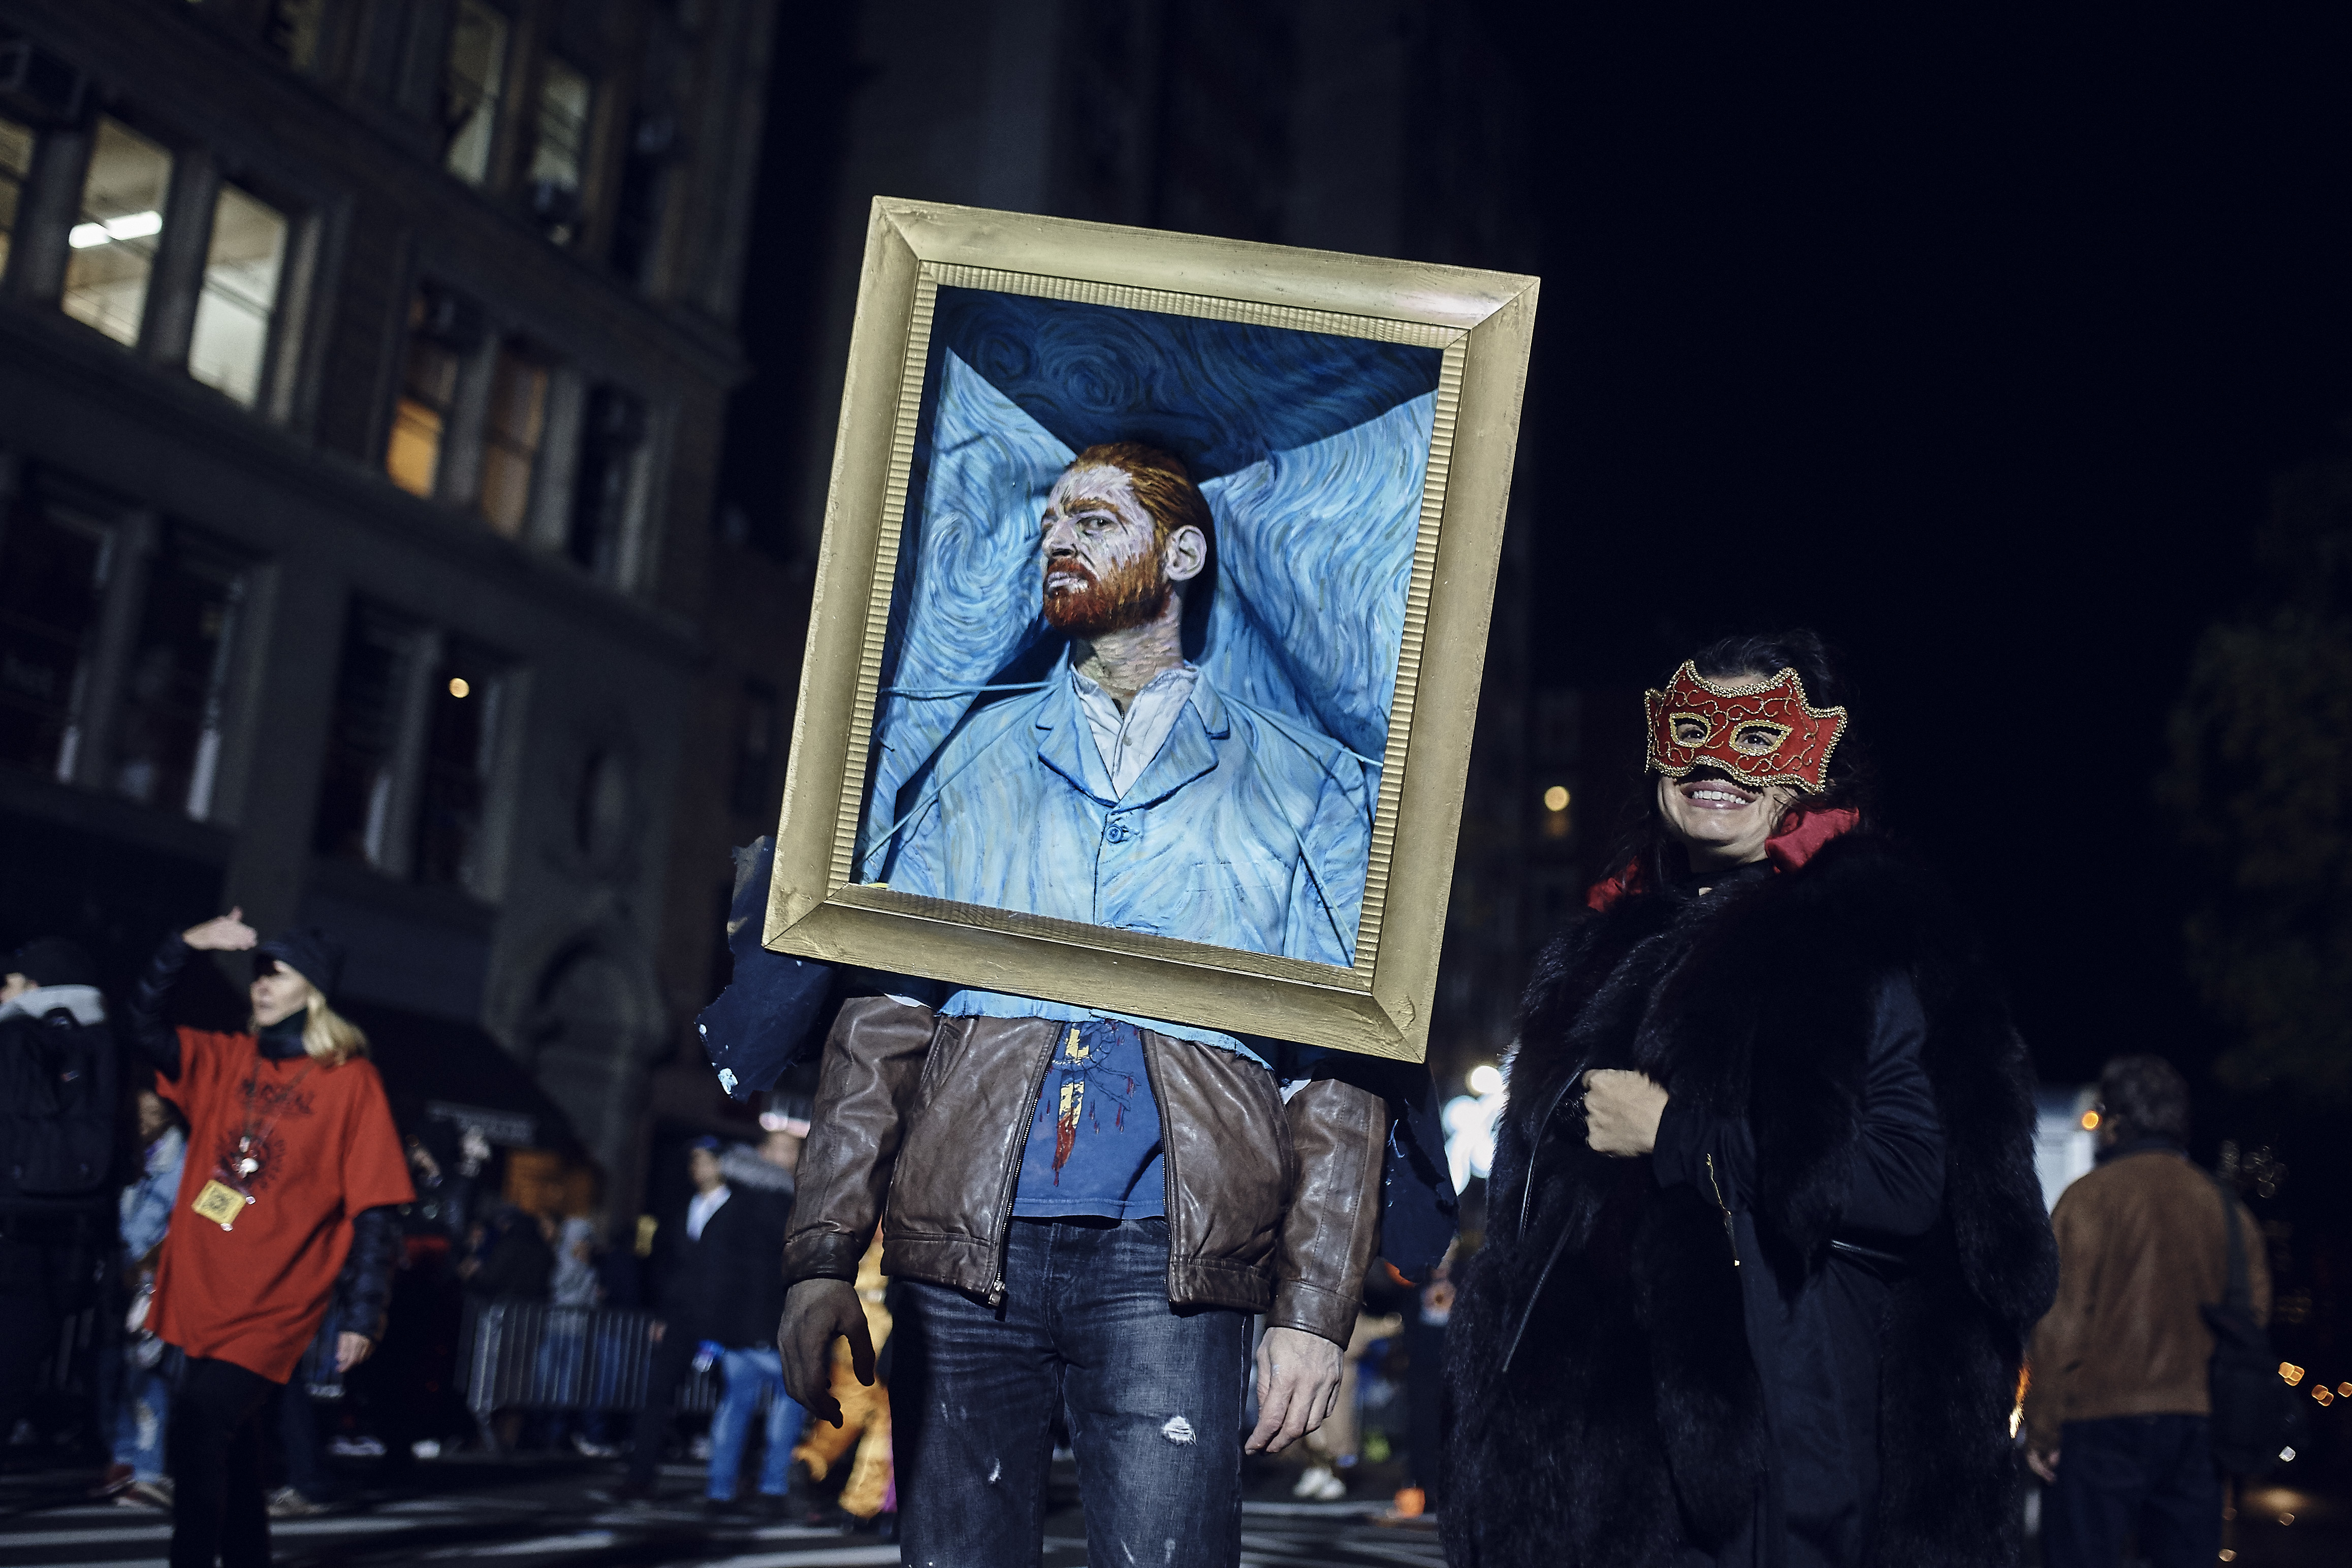 """<div class=""""meta image-caption""""><div class=""""origin-logo origin-image none""""><span>none</span></div><span class=""""caption-text"""">A reveler poses for the photographers during the Greenwich Village Halloween Parade, Tuesday, Oct. 31, 2017, in New York. (AP Photo/Andres Kudacki)</span></div>"""